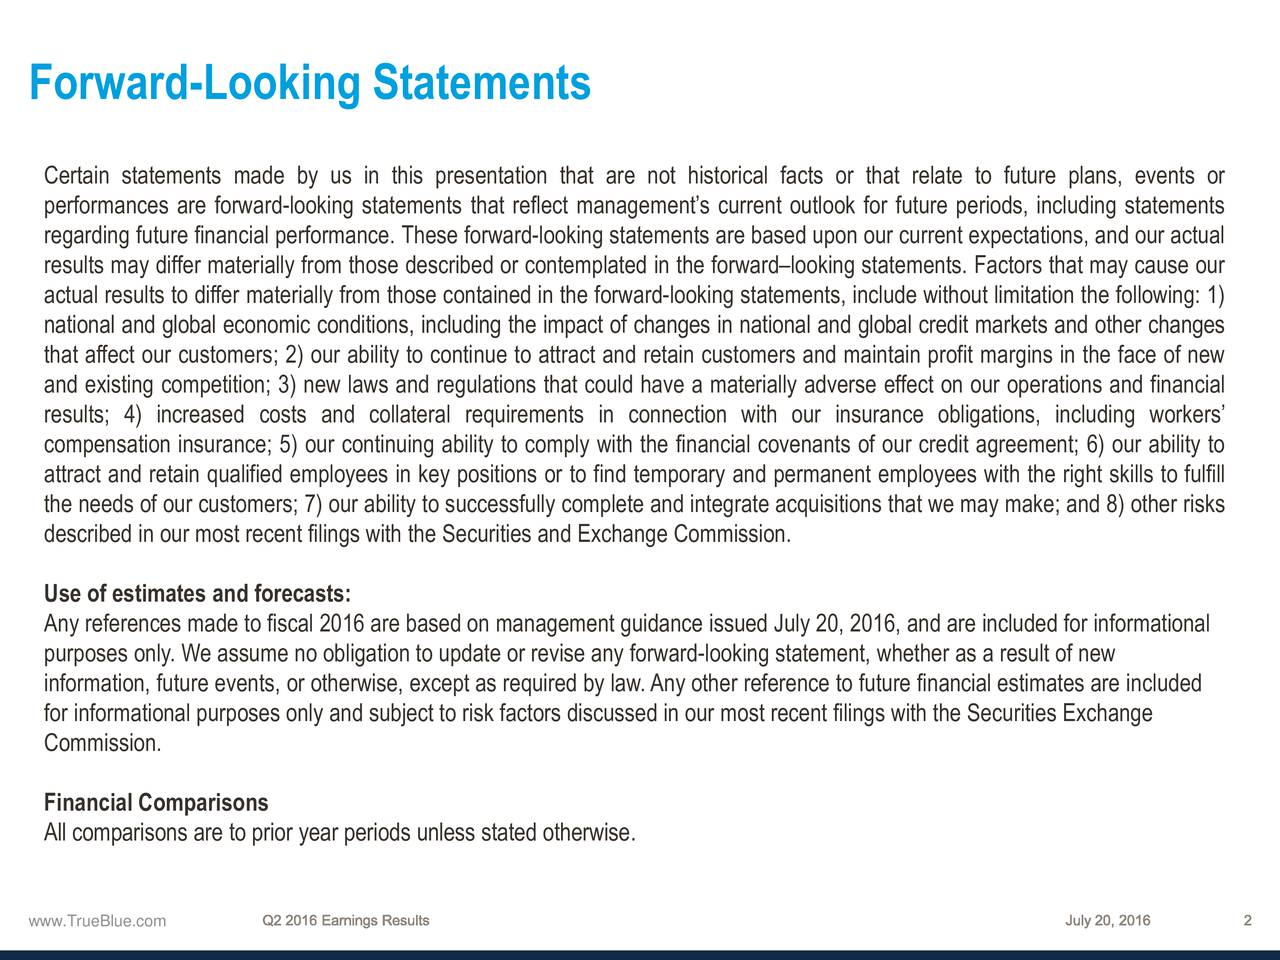 Certain statements made by us in this presentation that are not historical facts or that relate to future plans, events or performances are forward-looking statements that reflect managements current outlook for future periods, including statements regarding future financial performance. These forward-looking statements are based upon our current expectations, and our actual results may differ materially from those described or contemplated in the forwardlooking statements. Factors that may cause our actual results to differ materially from those contained in the forward-looking statements, include without limitation the following: 1) national and global economic conditions, including the impact of changes in national and global credit markets and other changes that affect our customers; 2) our ability to continue to attract and retain customers and maintain profit margins in the face of new and existing competition; 3) new laws and regulations that could have a materially adverse effect on our operations and financial results; 4) increased costs and collateral requirements in connection with our insurance obligations, including workers compensation insurance; 5) our continuing ability to comply with the financial covenants of our credit agreement; 6) our ability to attract and retain qualified employees in key positions or to find temporary and permanent employees with the right skills to fulfill the needs of our customers; 7) our ability to successfully complete and integrate acquisitions that we may make; and 8) other risks described in our most recent filings with the Securities and Exchange Commission. Use of estimates and forecasts: Any references made to fiscal 2016 are based on management guidance issued July 20, 2016, and are included for informational purposes only. We assume no obligation to update or revise any forward-looking statement, whether as a result of new information, future events, or otherwise, except as required by law.Any other reference to 